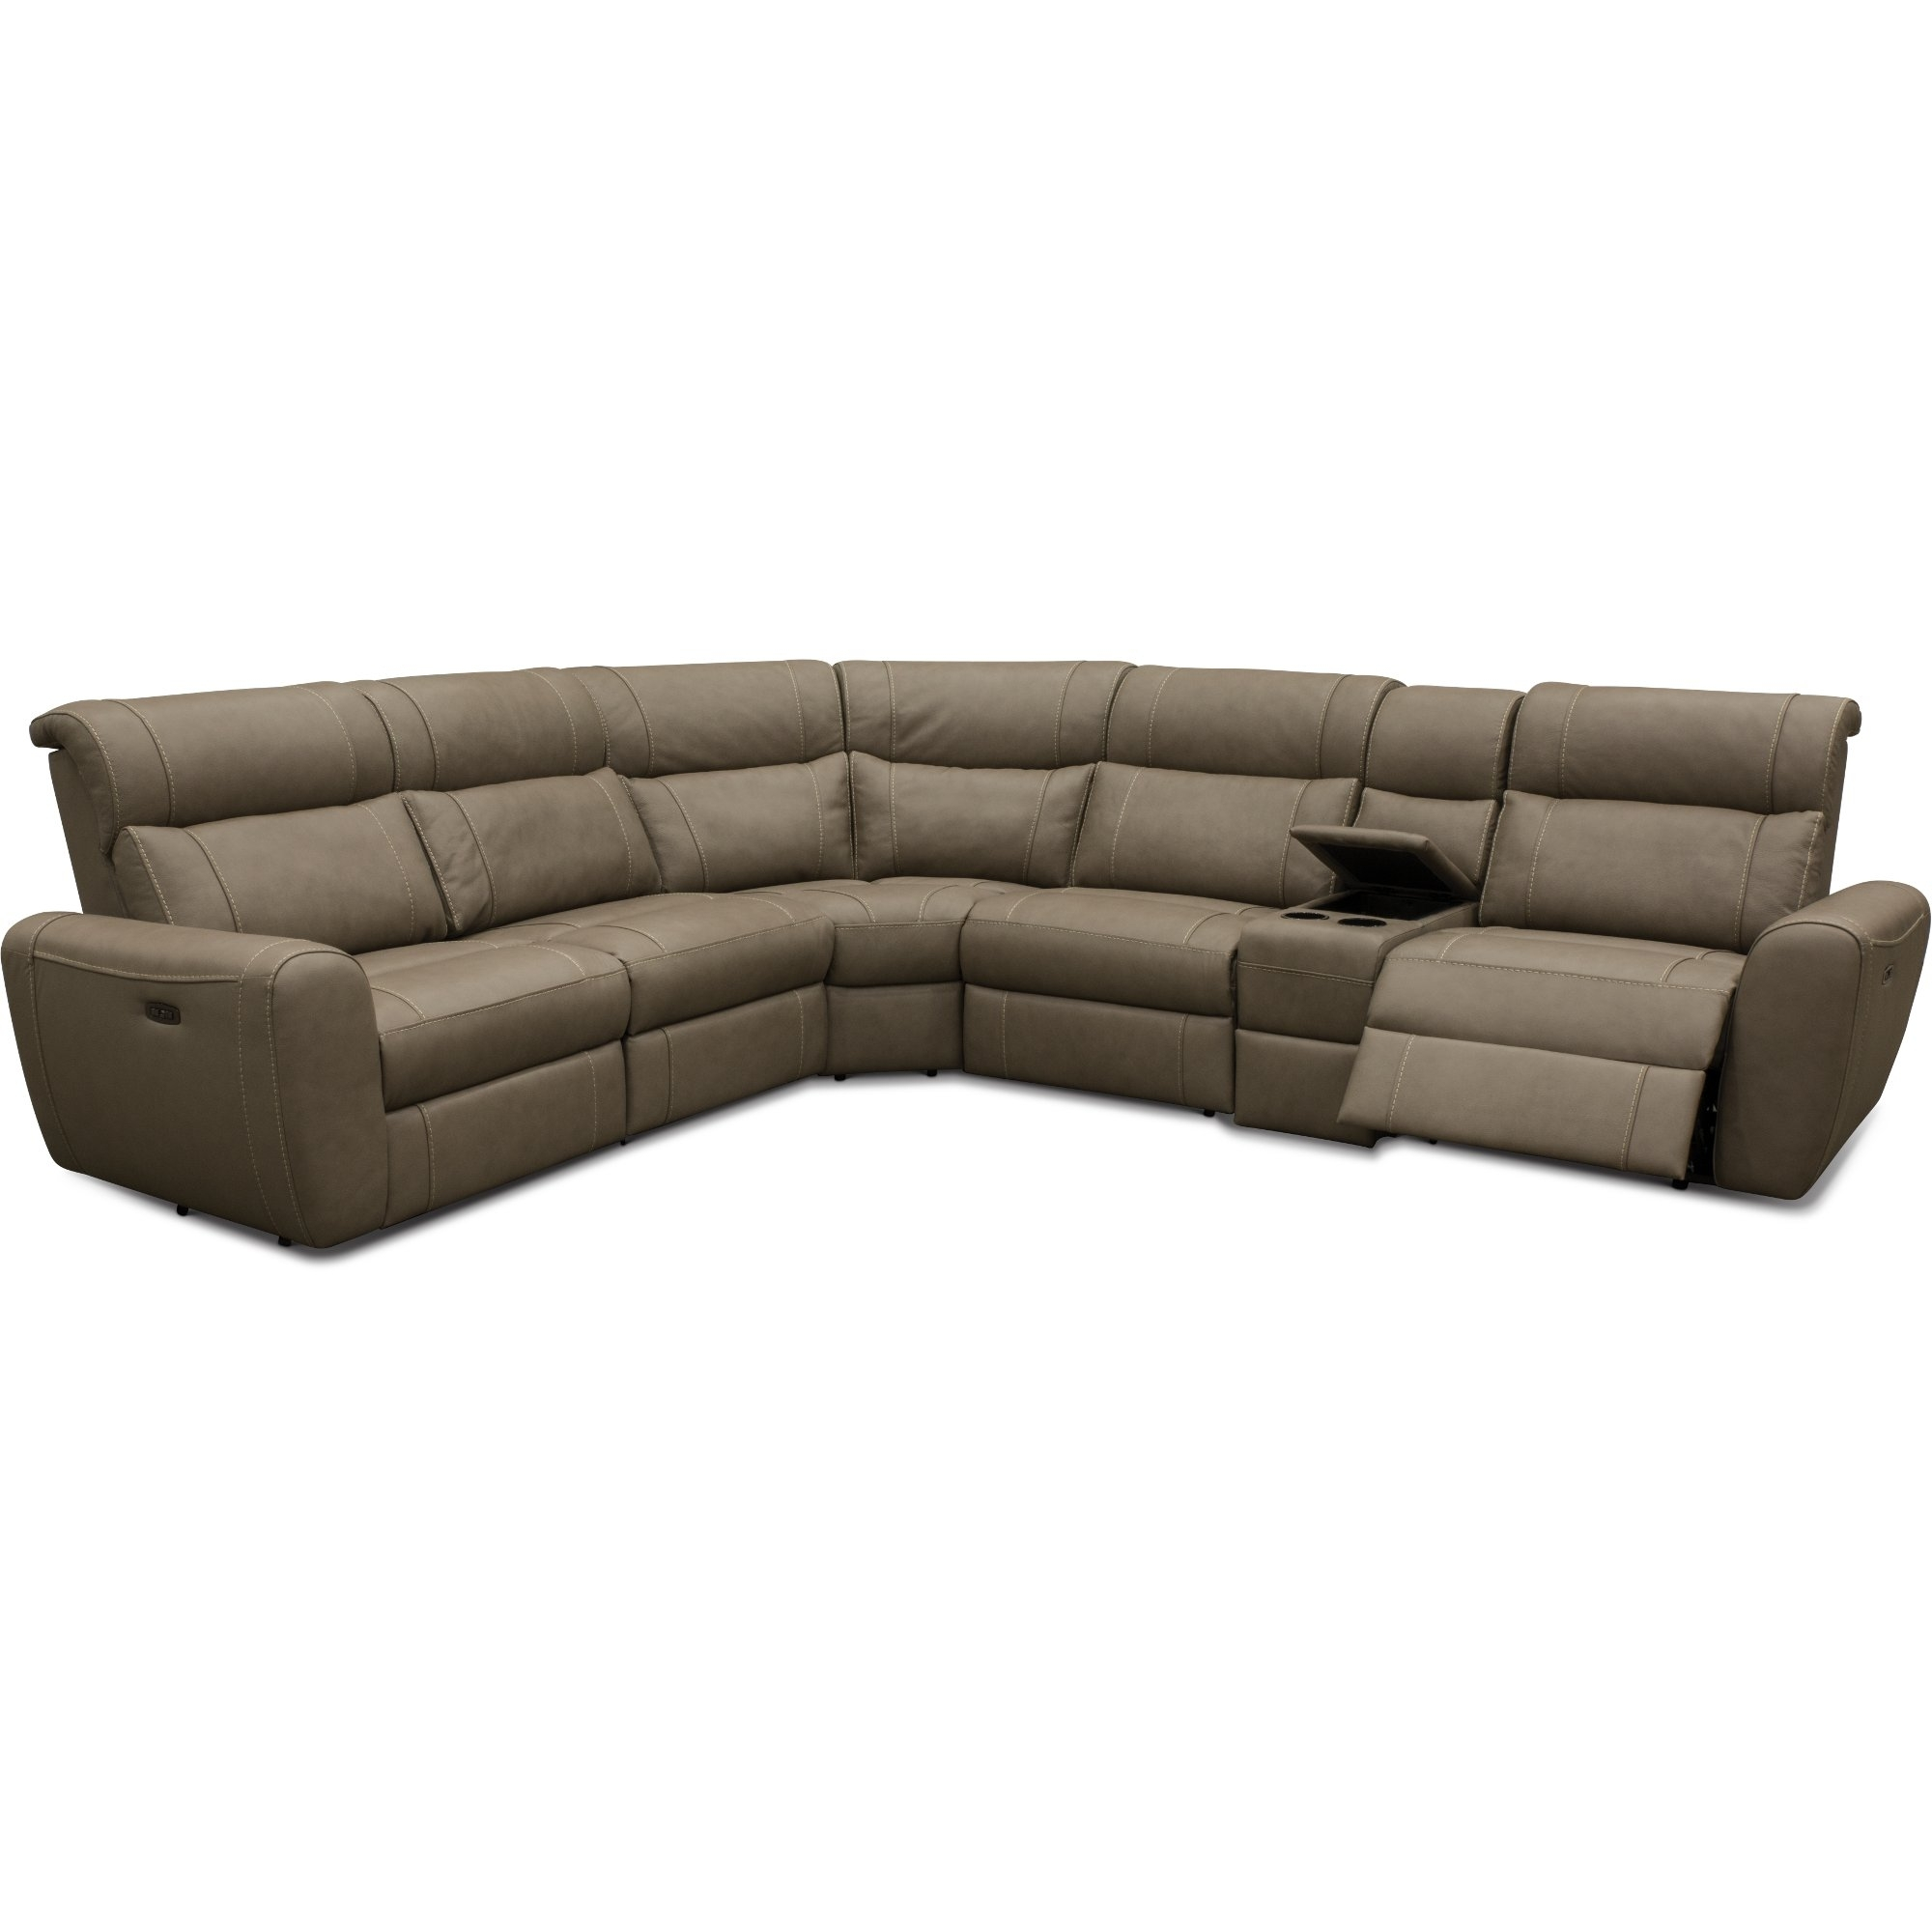 Taupe Leather Match 6 Piece Power Sectional Sofa – Robert   Rc Pertaining To Denali Charcoal Grey 6 Piece Reclining Sectionals With 2 Power Headrests (Image 25 of 25)